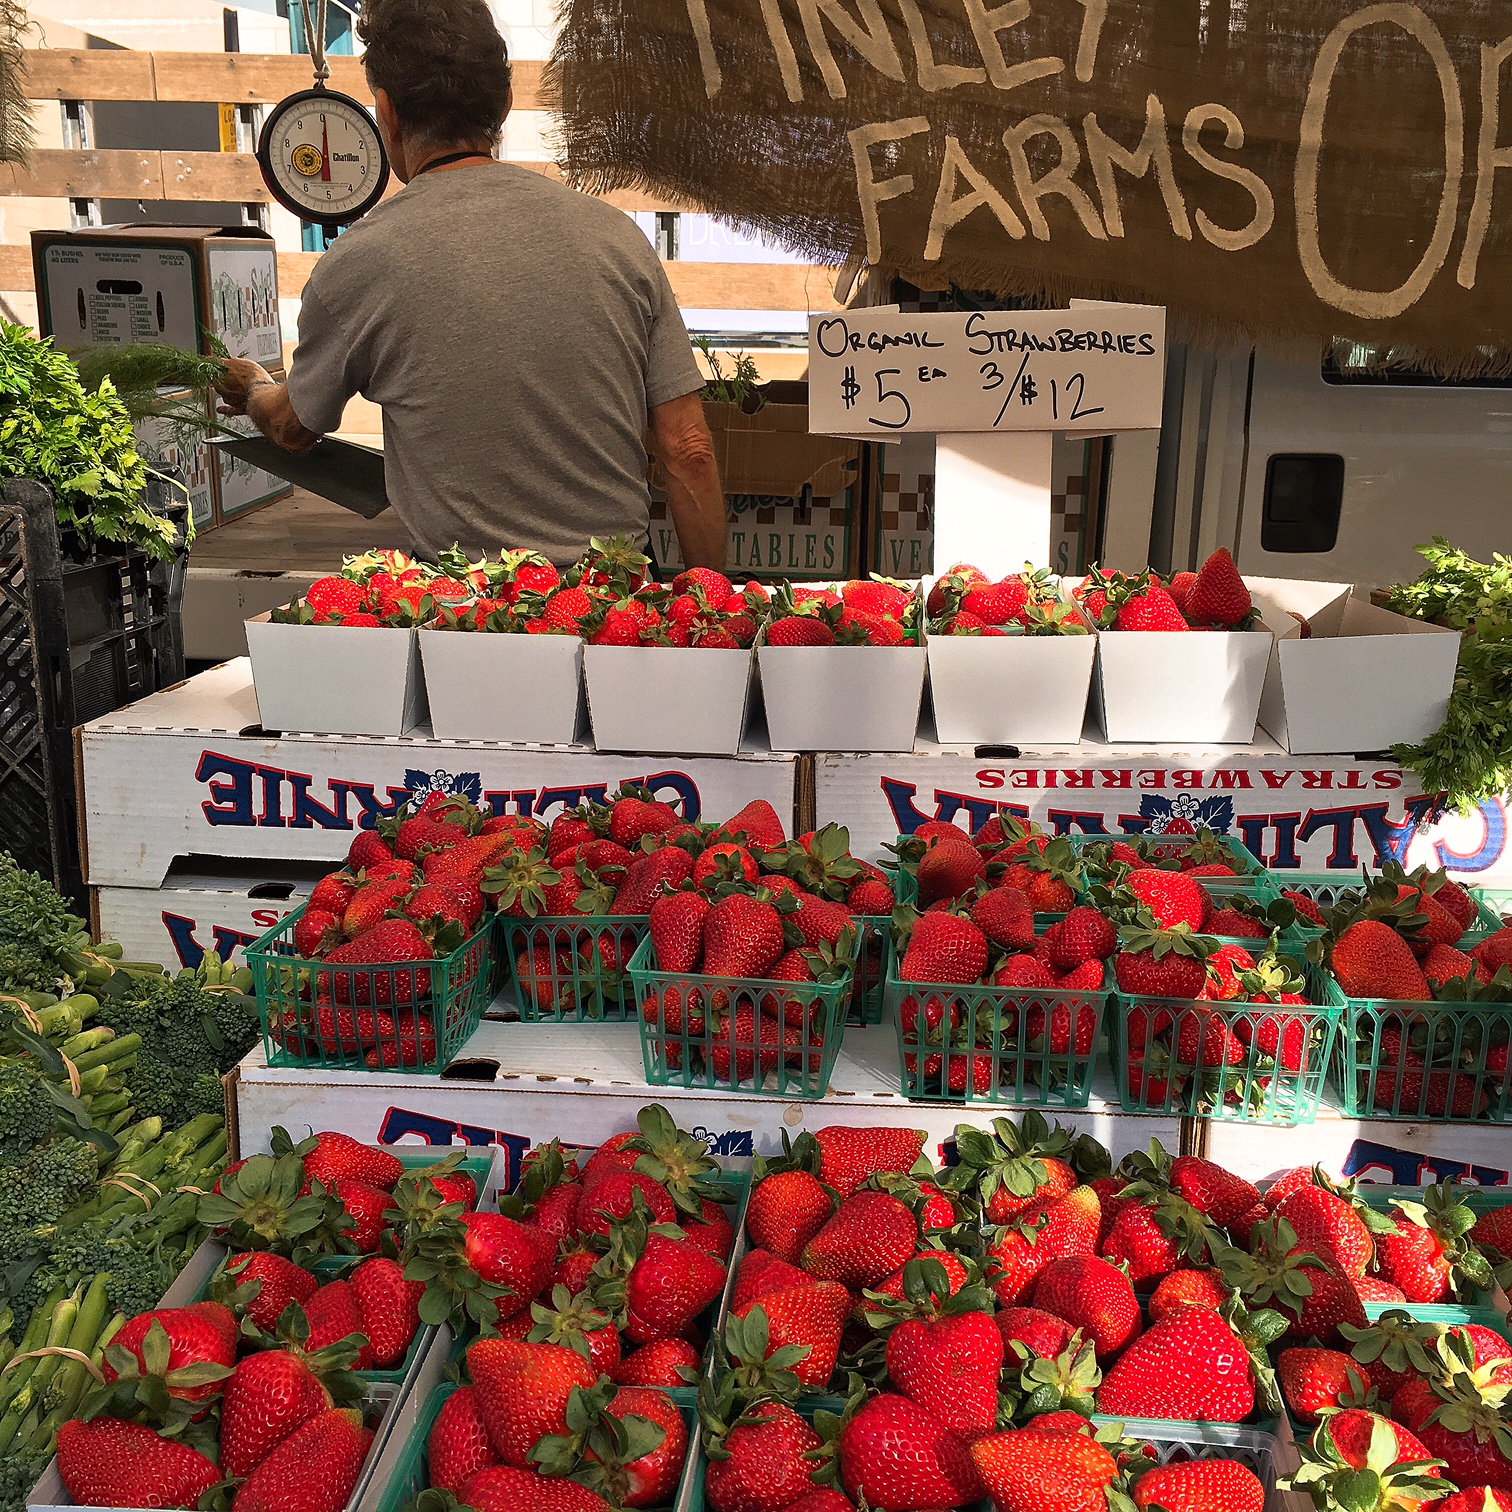 Finley Farms. Just one of the many strawberry vendors at the Santa Monica Farmers Market.